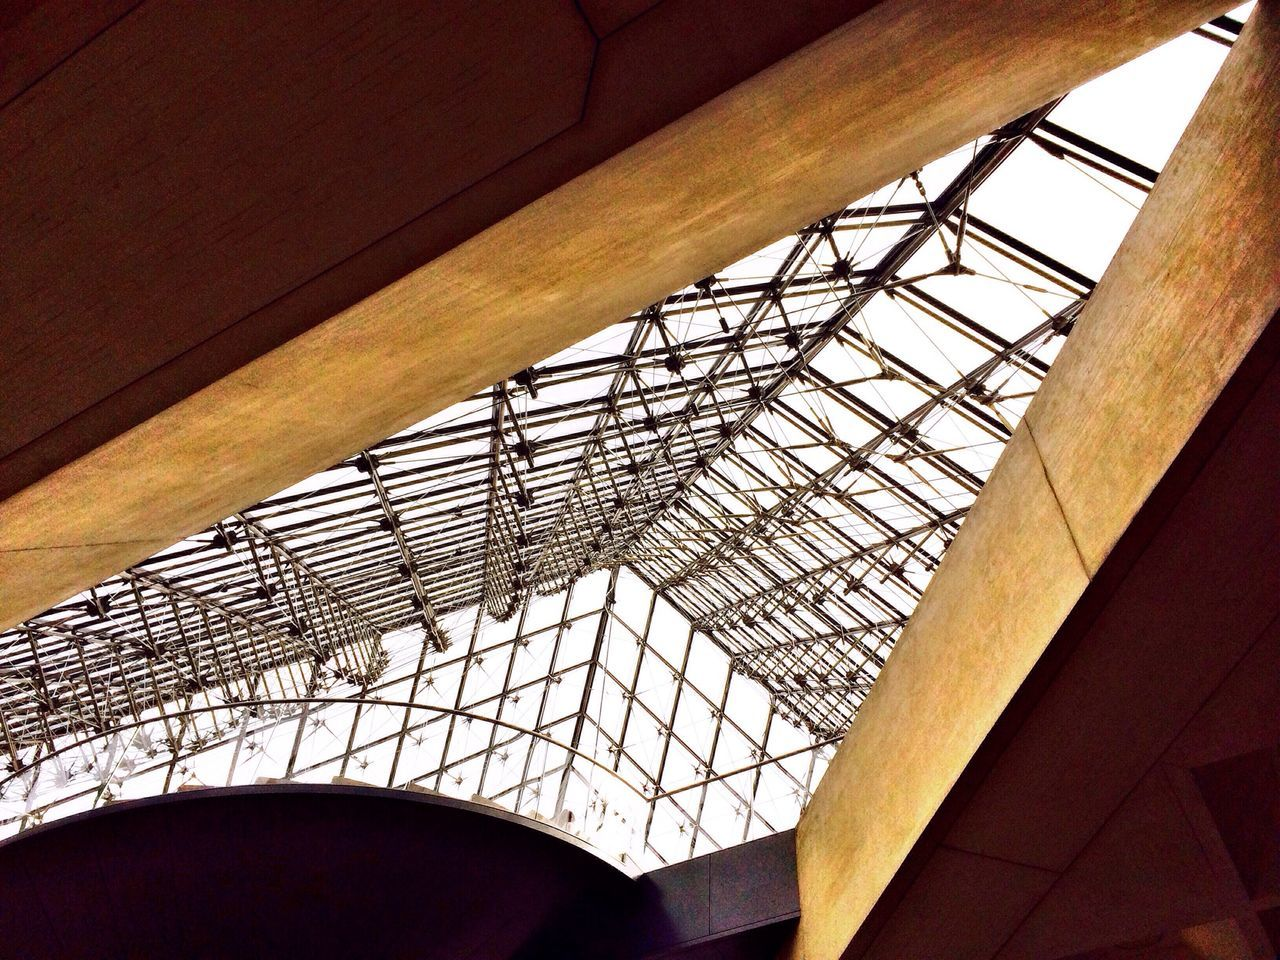 Low angle view of geometric shapes in musee du louvre